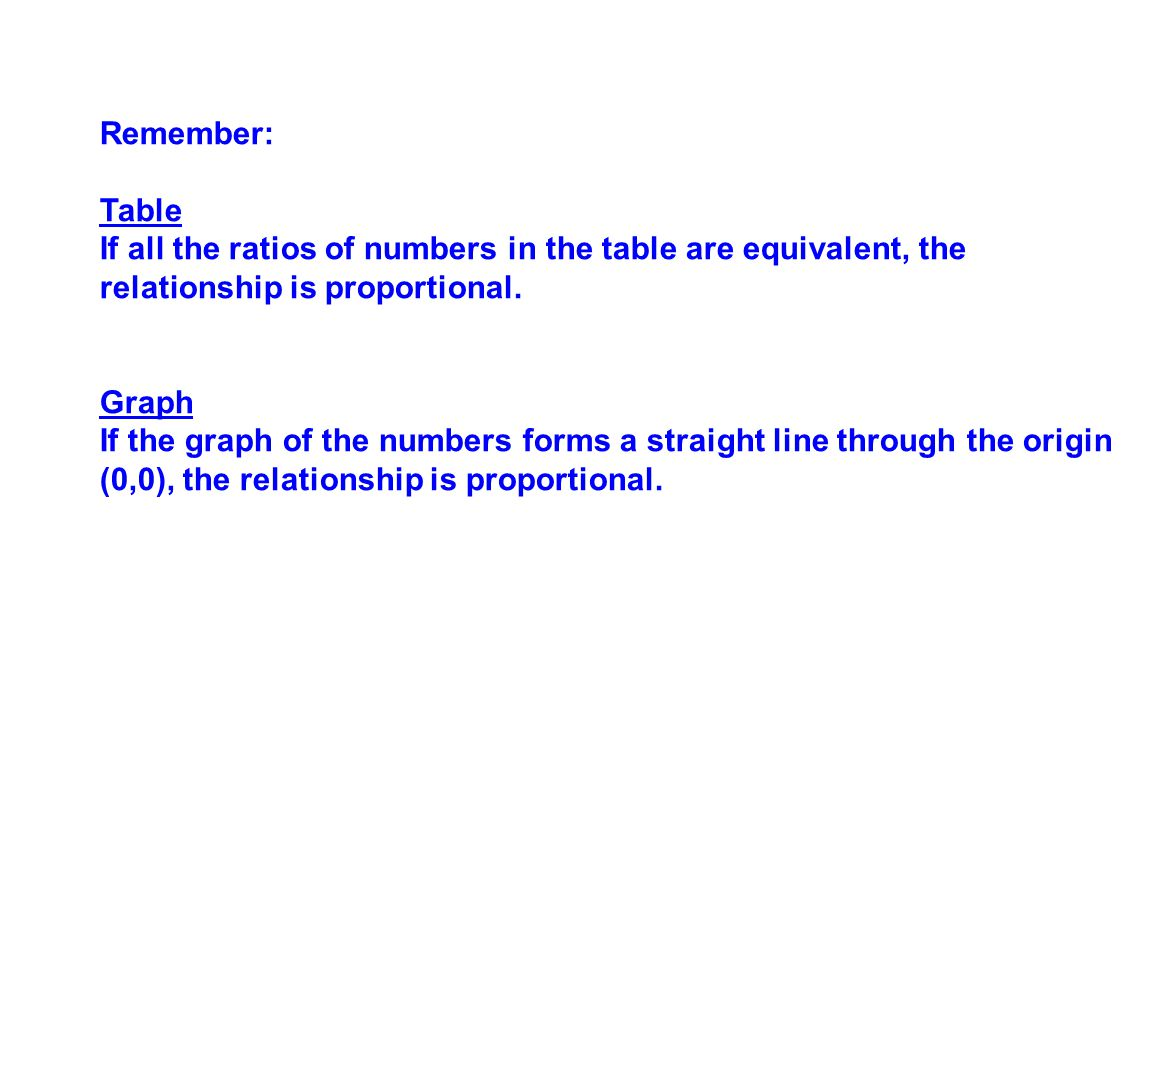 Remember: Table. If all the ratios of numbers in the table are equivalent, the relationship is proportional.